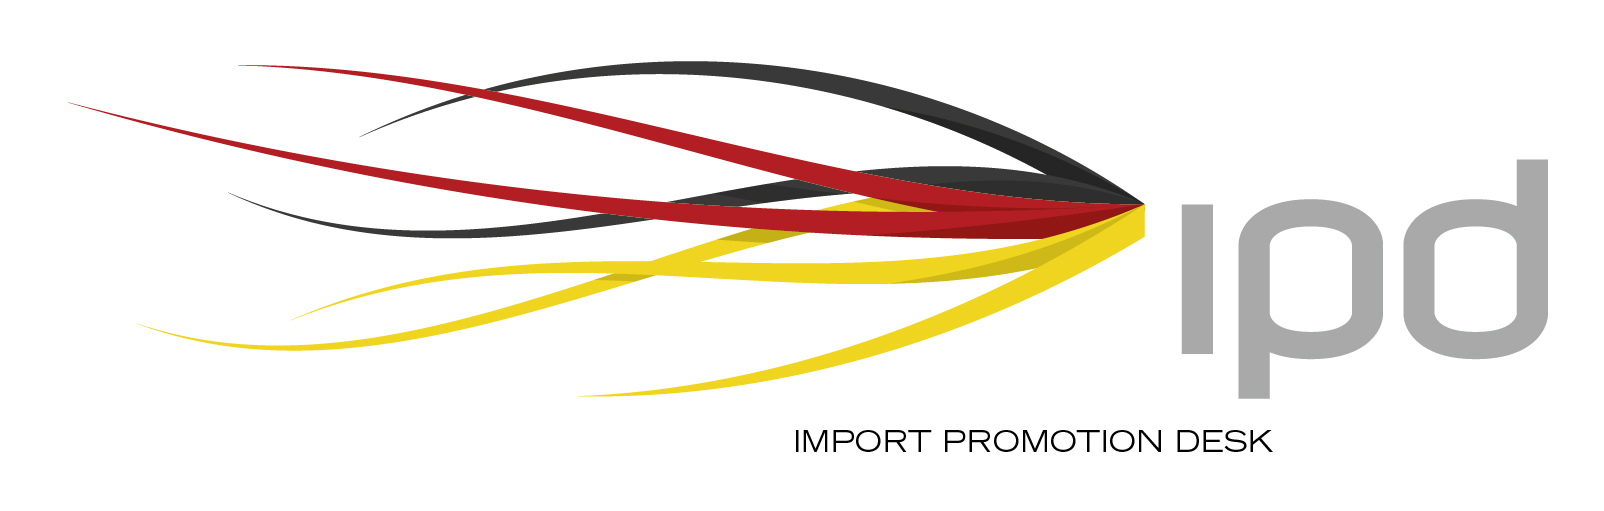 Import Promotion Desk (IPD)